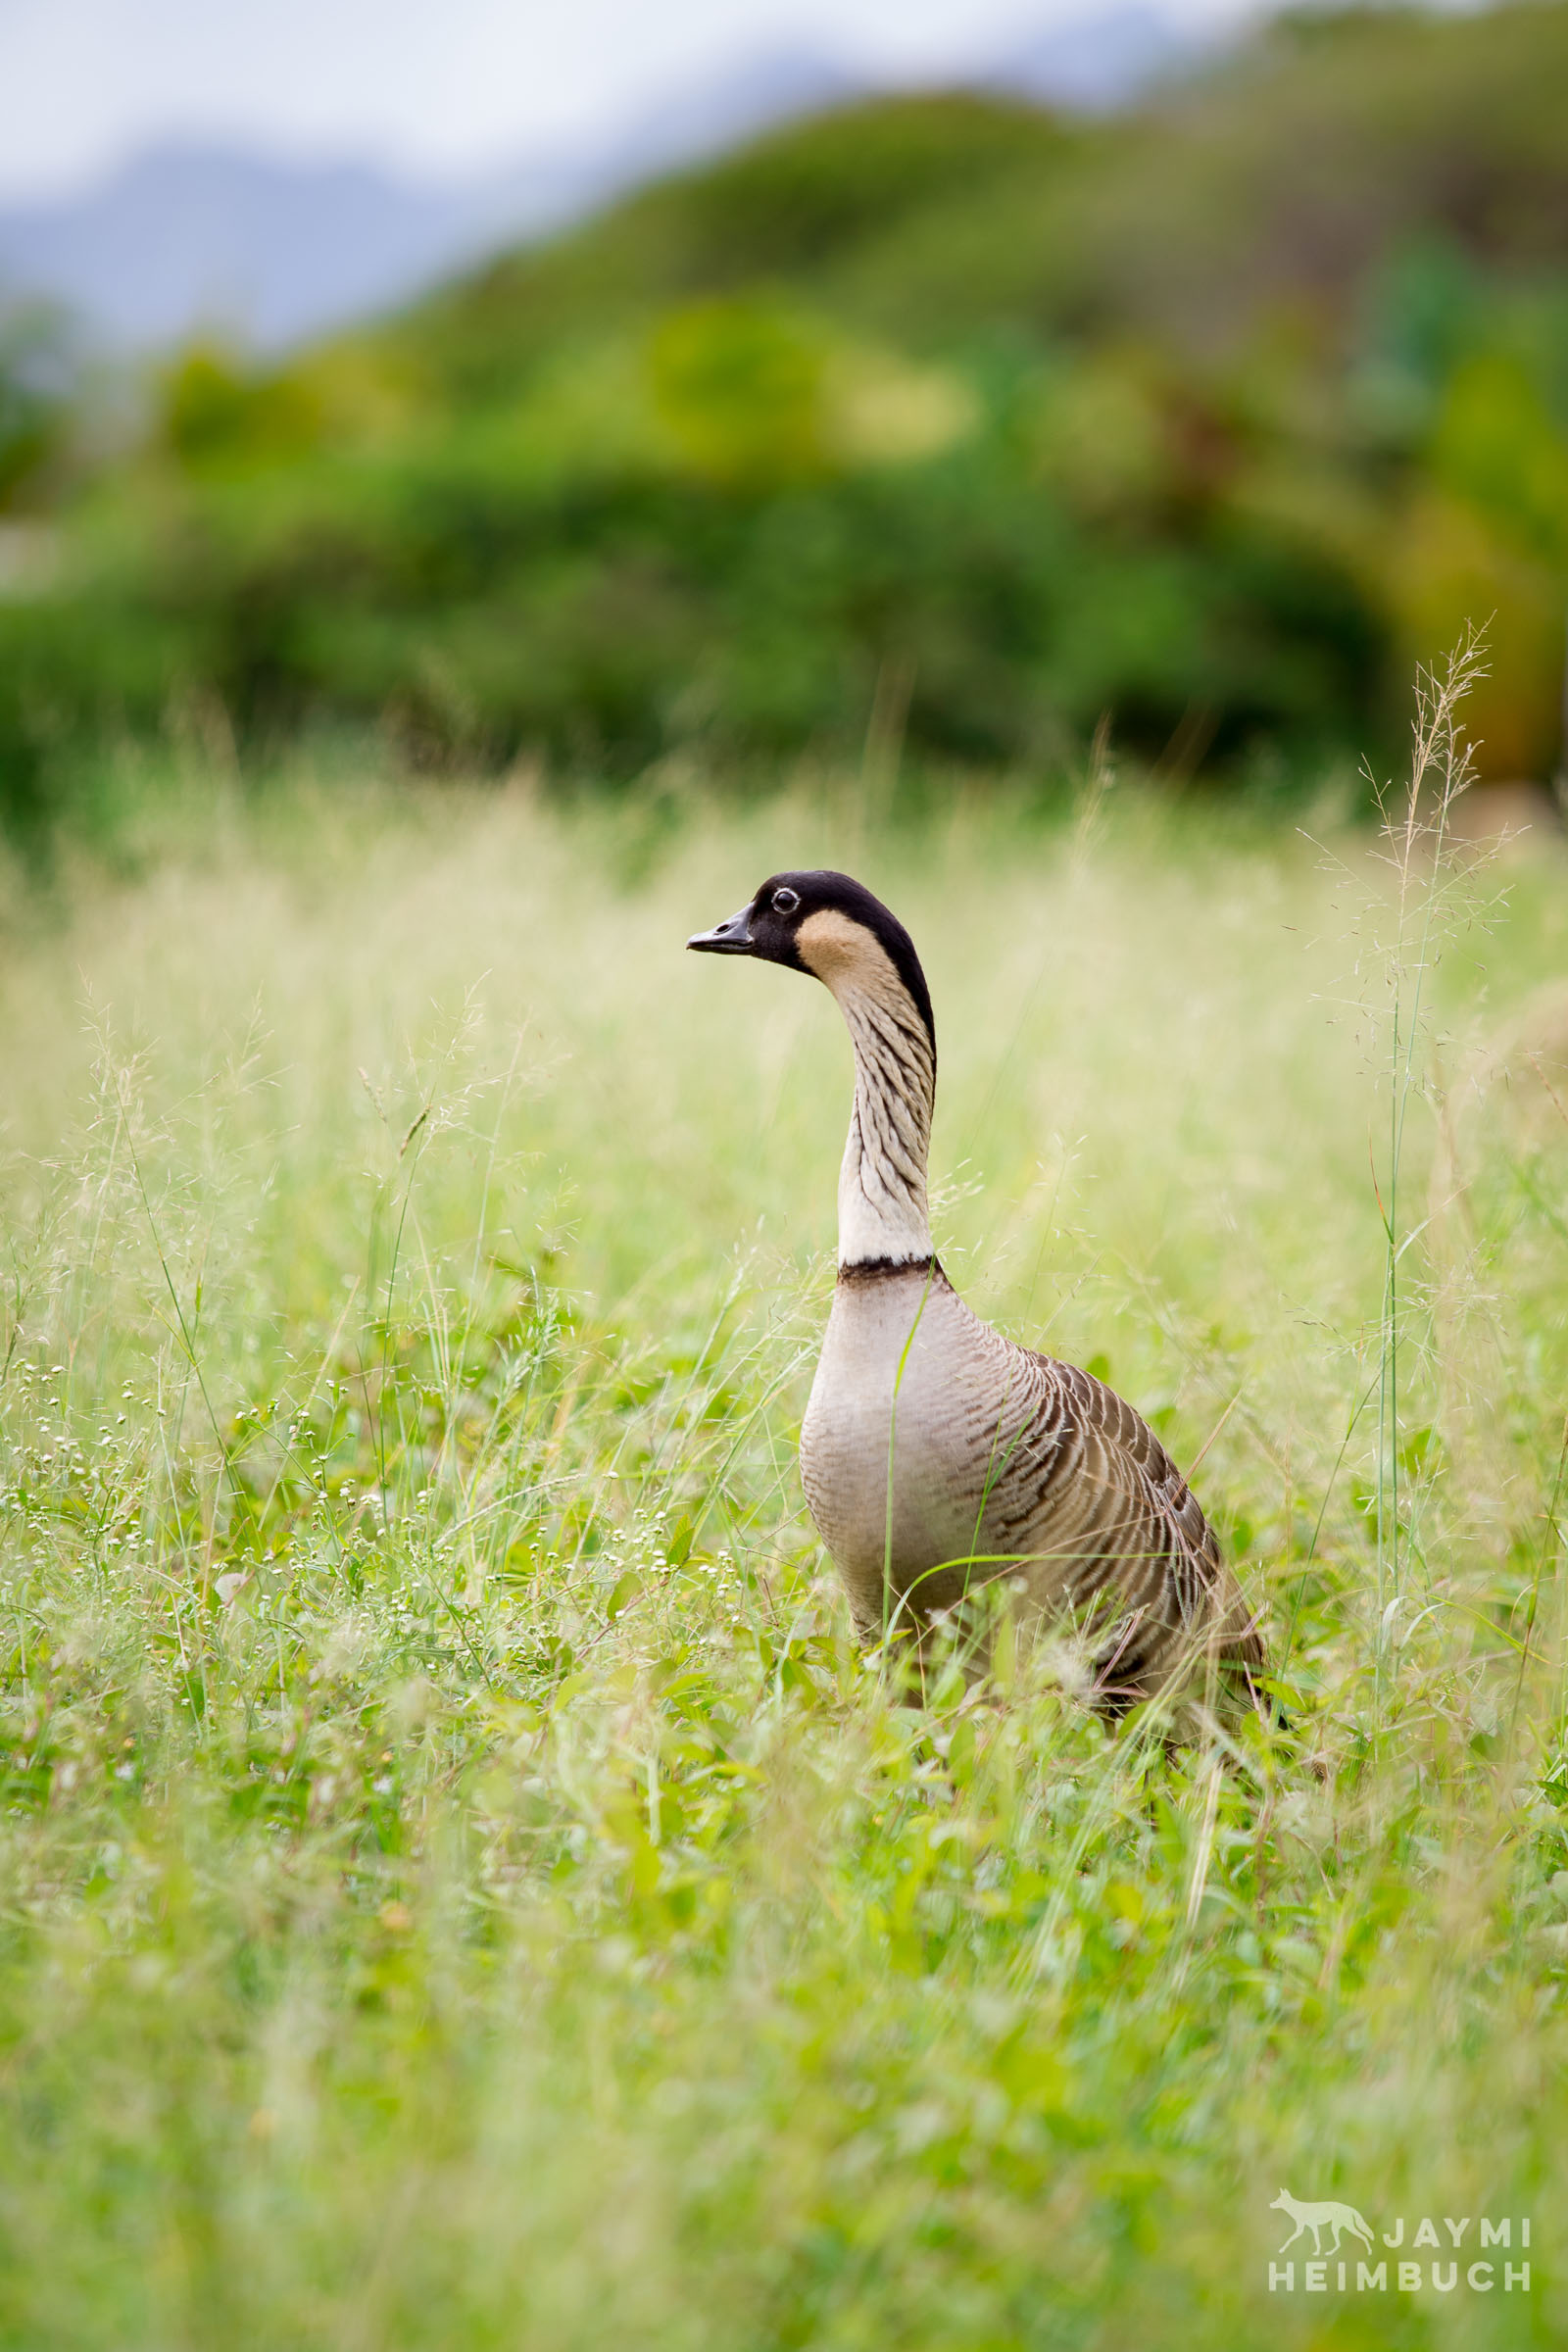 Unbanded wild adult Hawaiian Goose, Branta sandvicensis. This species is listed as Vulnerable by IUCN